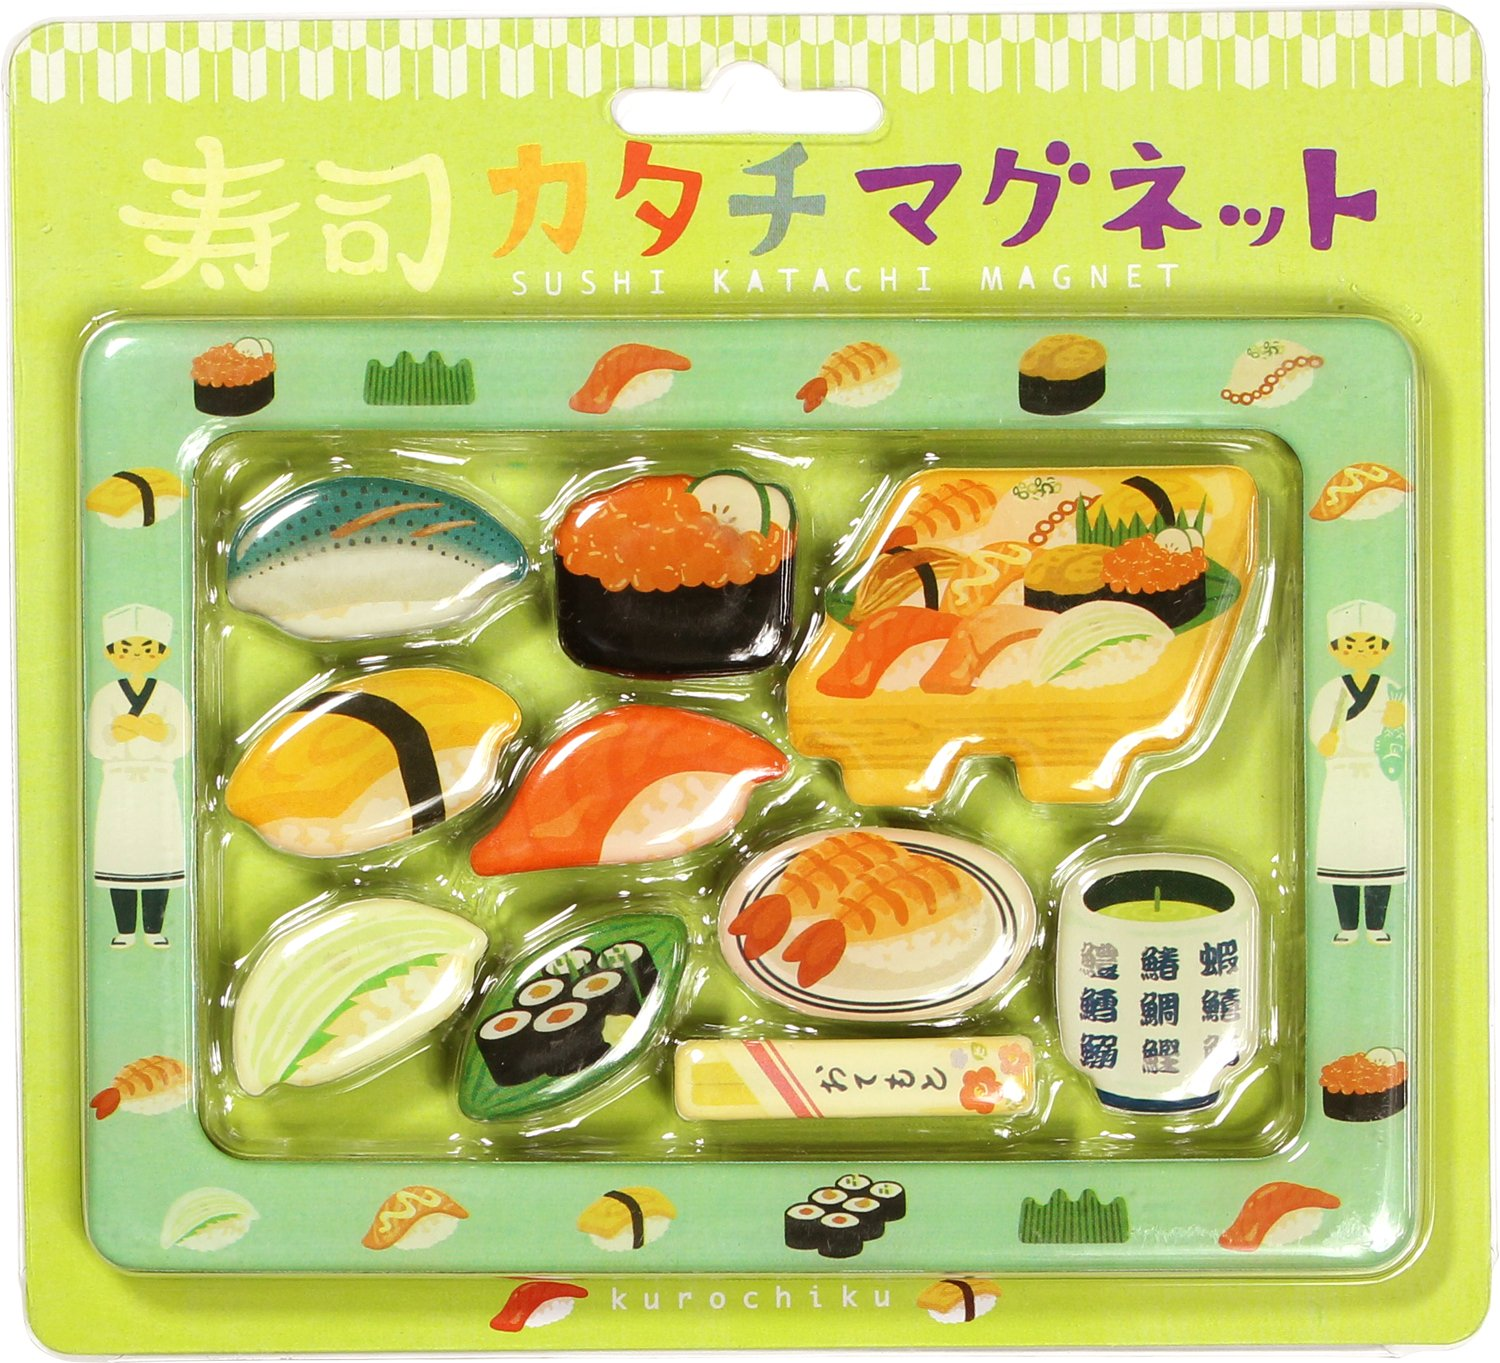 71406910 Japan Kawaii Japanese Sushi Magnet Assort 10pcs with Photo Frame, Kyoto Kurochiku